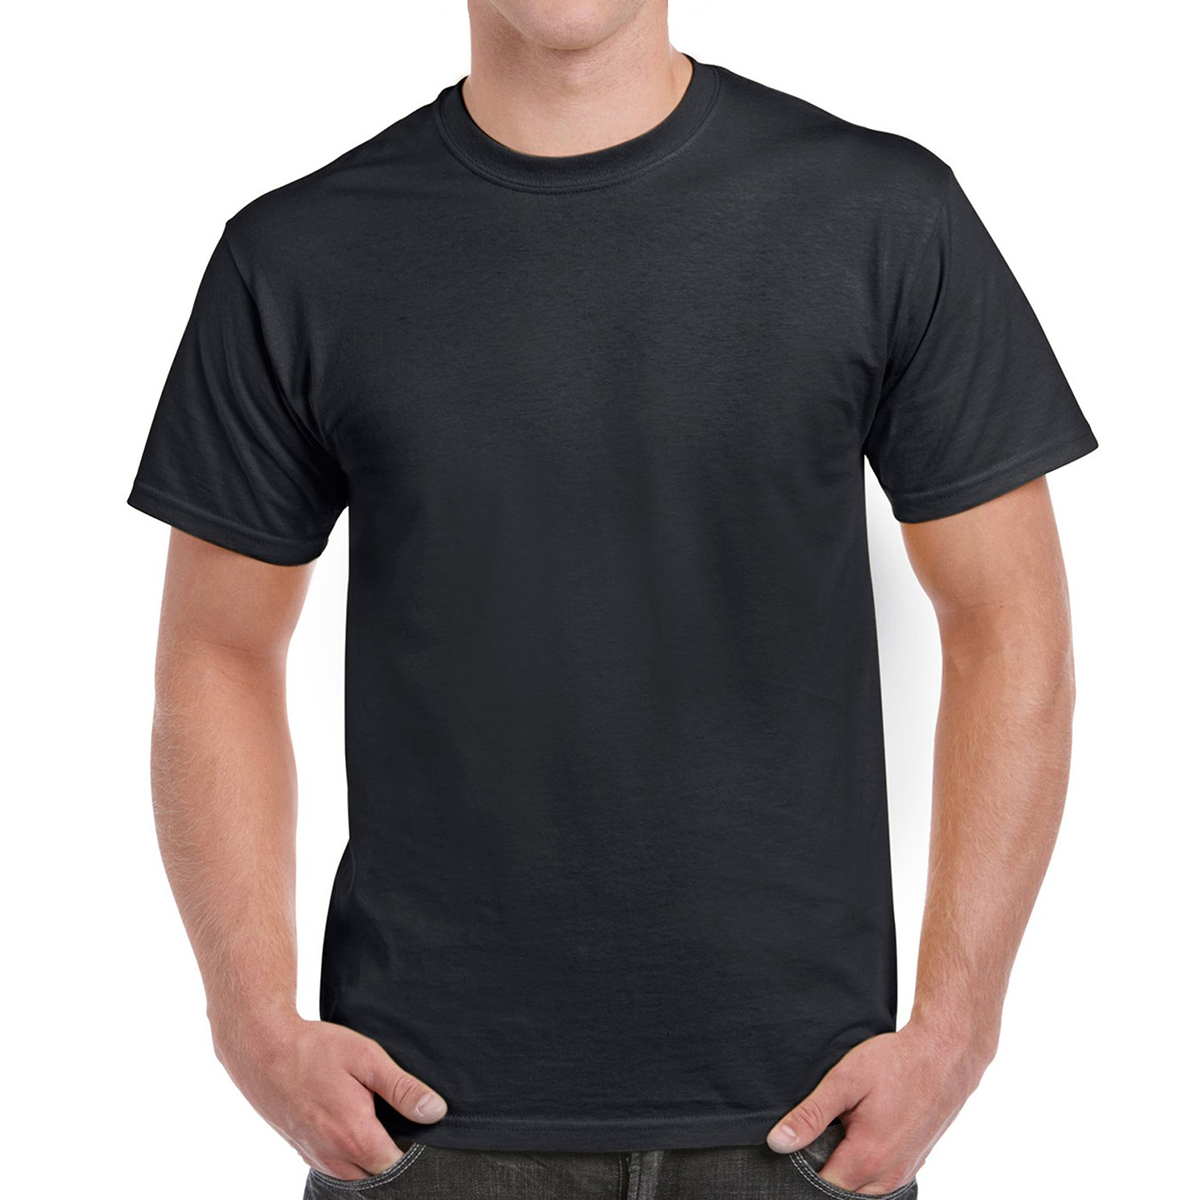 The 100% Cotton T-Shirt: Gildan Men's Ultra Cotton Adult T-Shirt